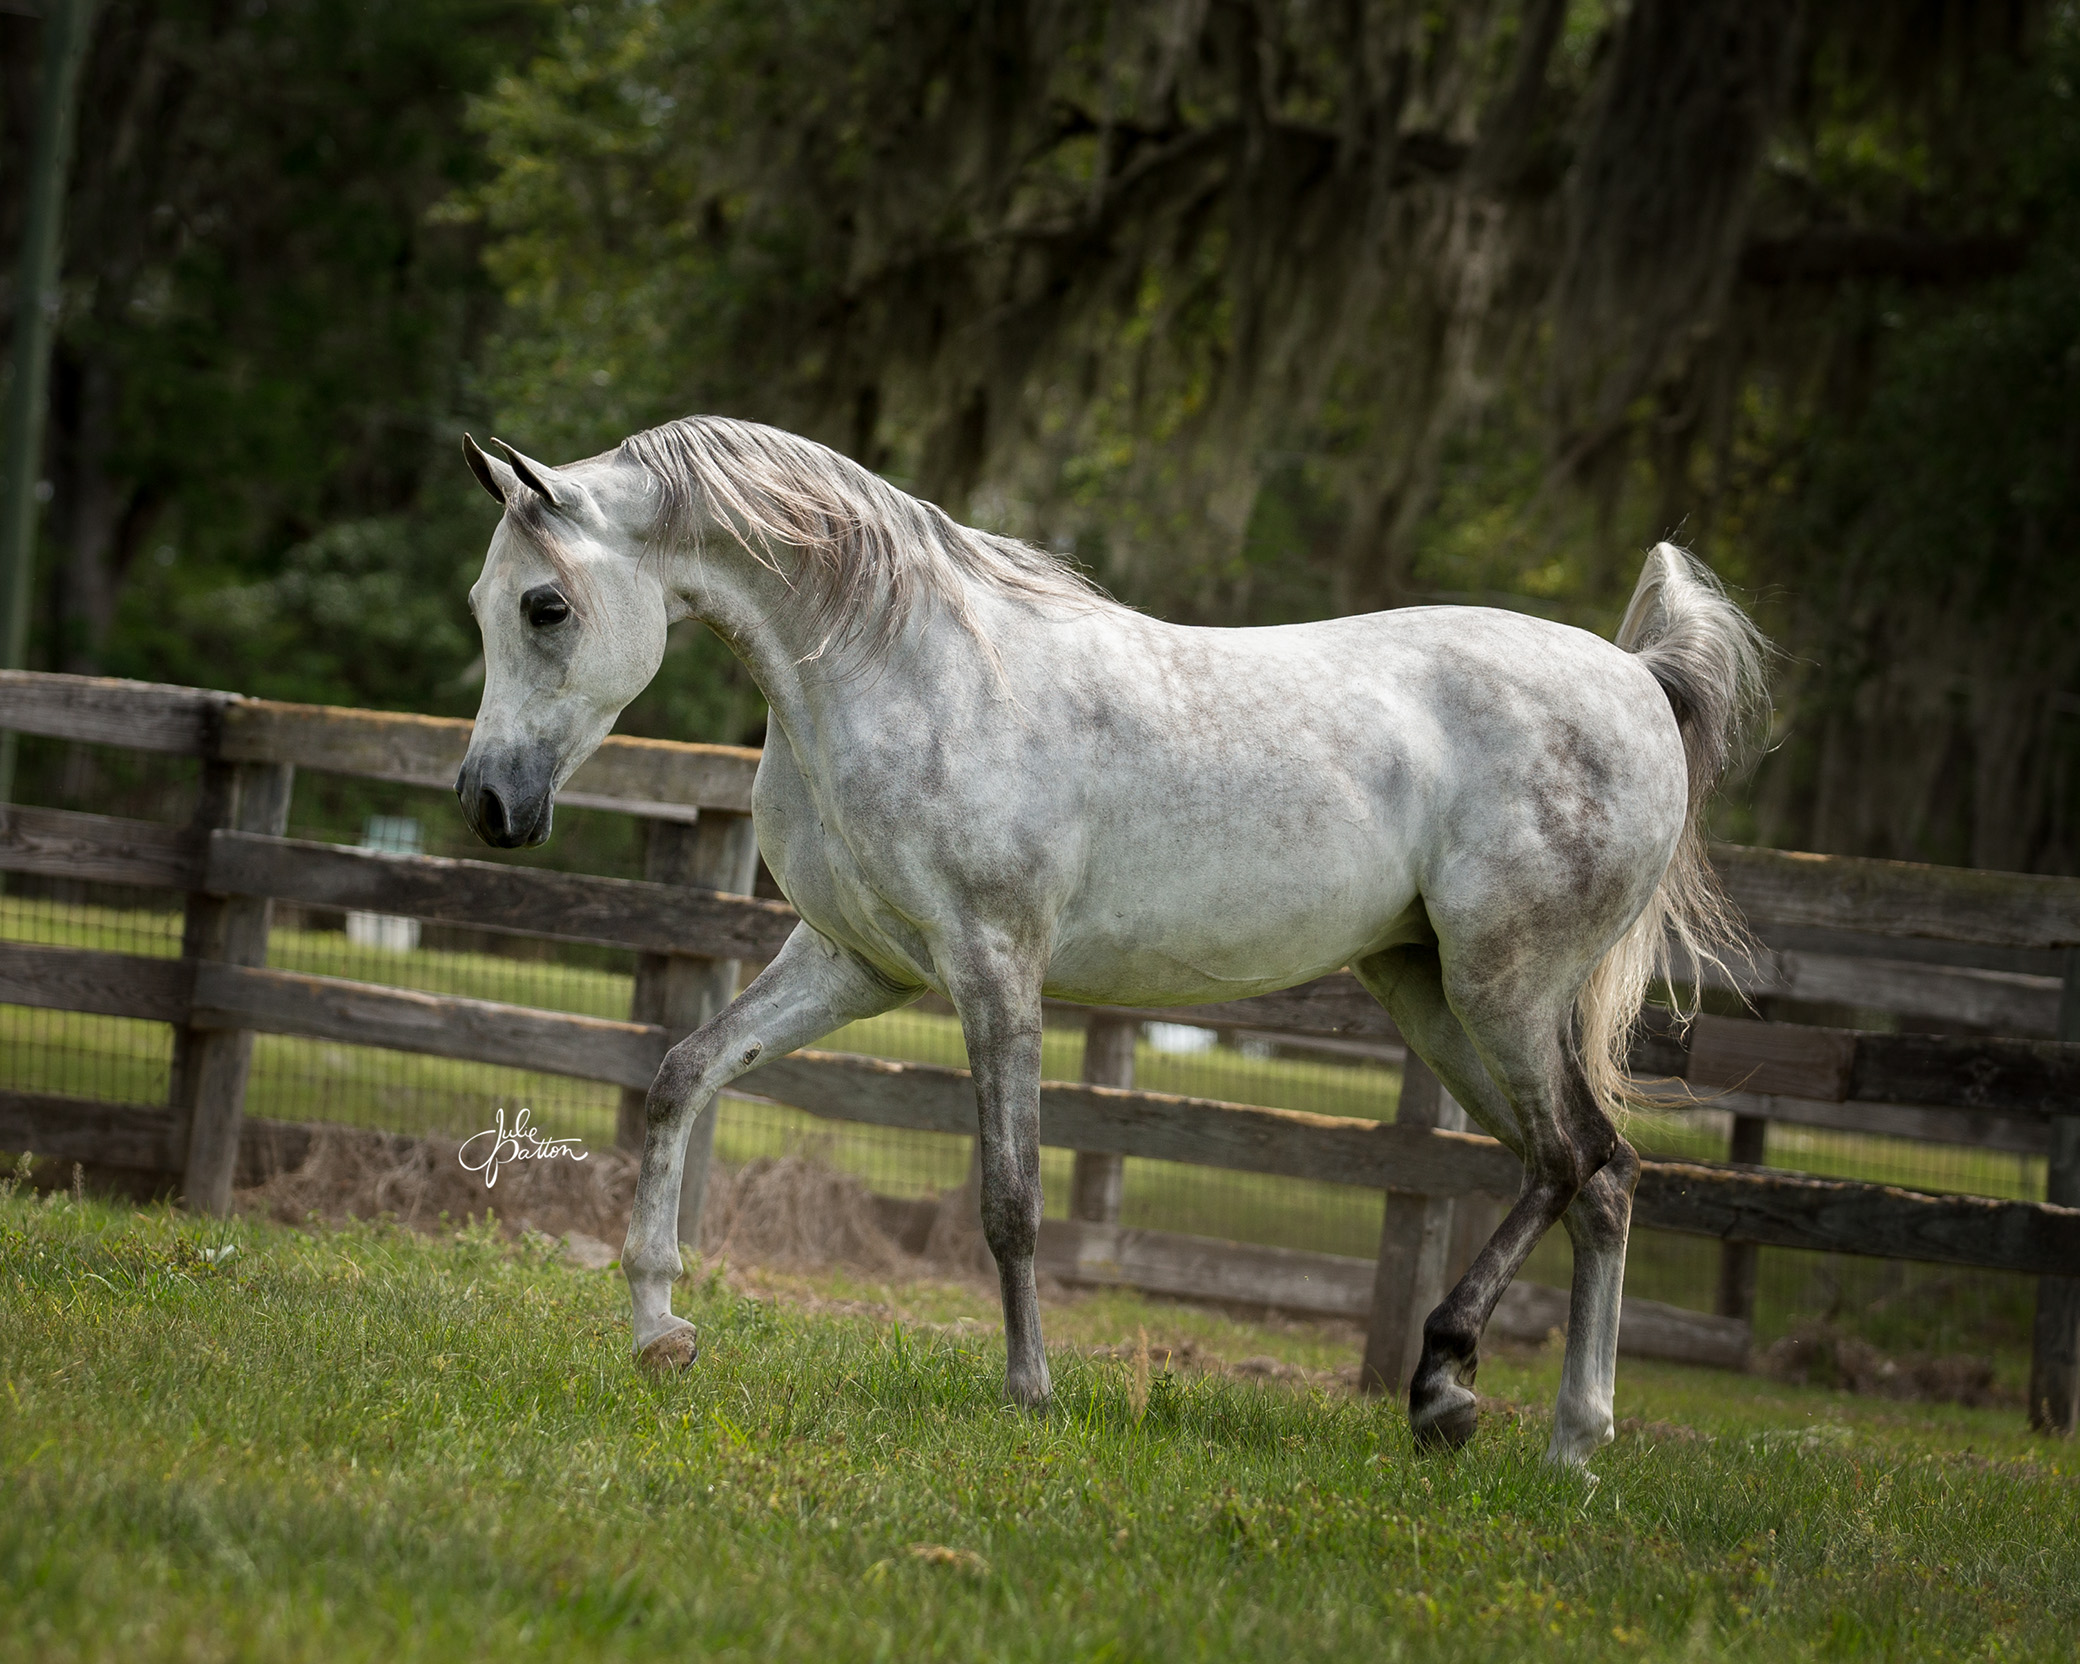 2013 Half Arabian Gelding by KM Bugatti out of National Champion Half Arabian Mare, Rohanna Europiana.